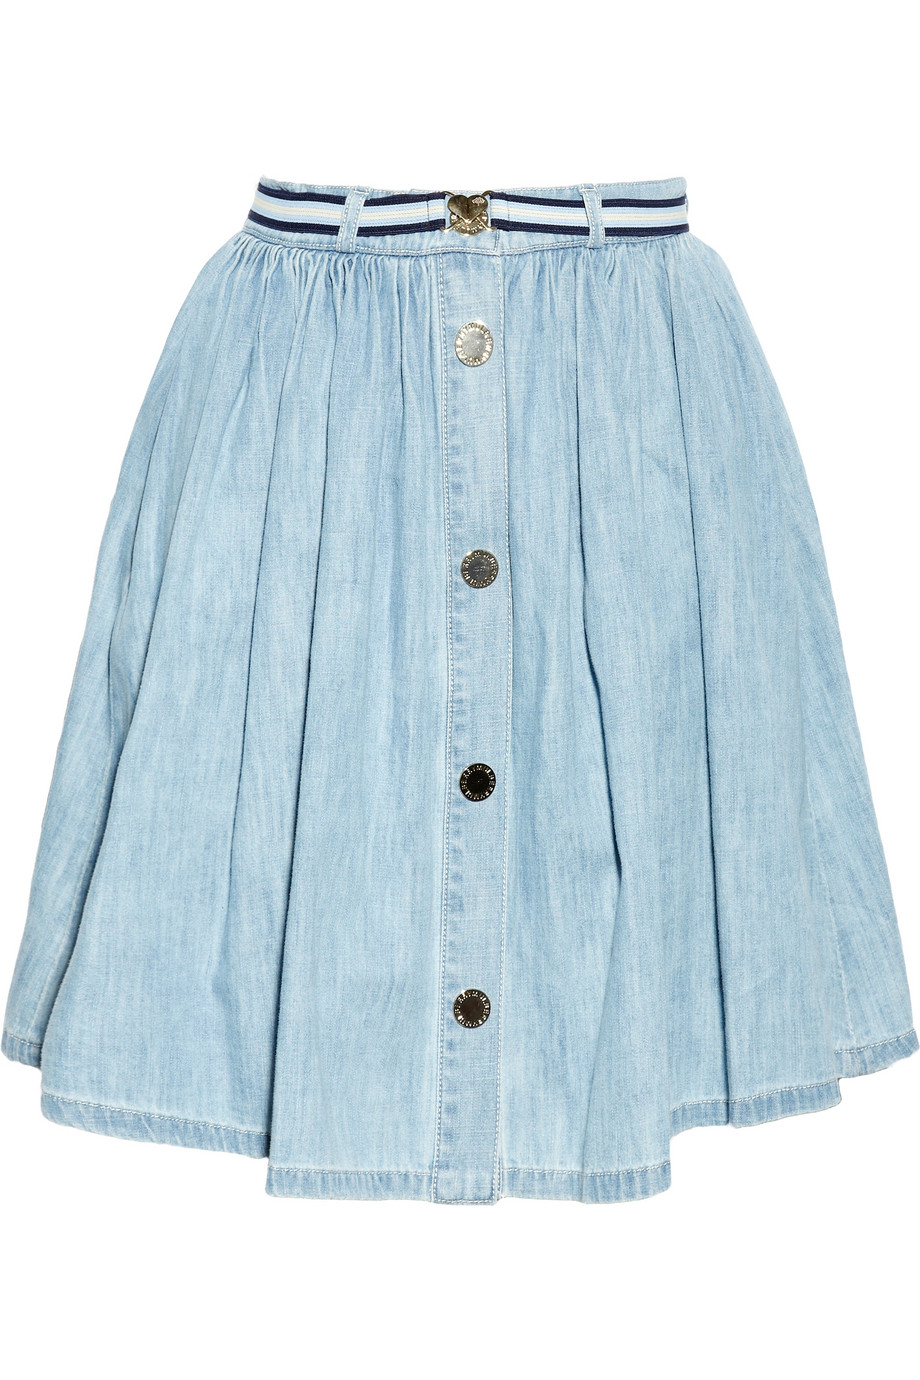 pleated denim skirt dress ala